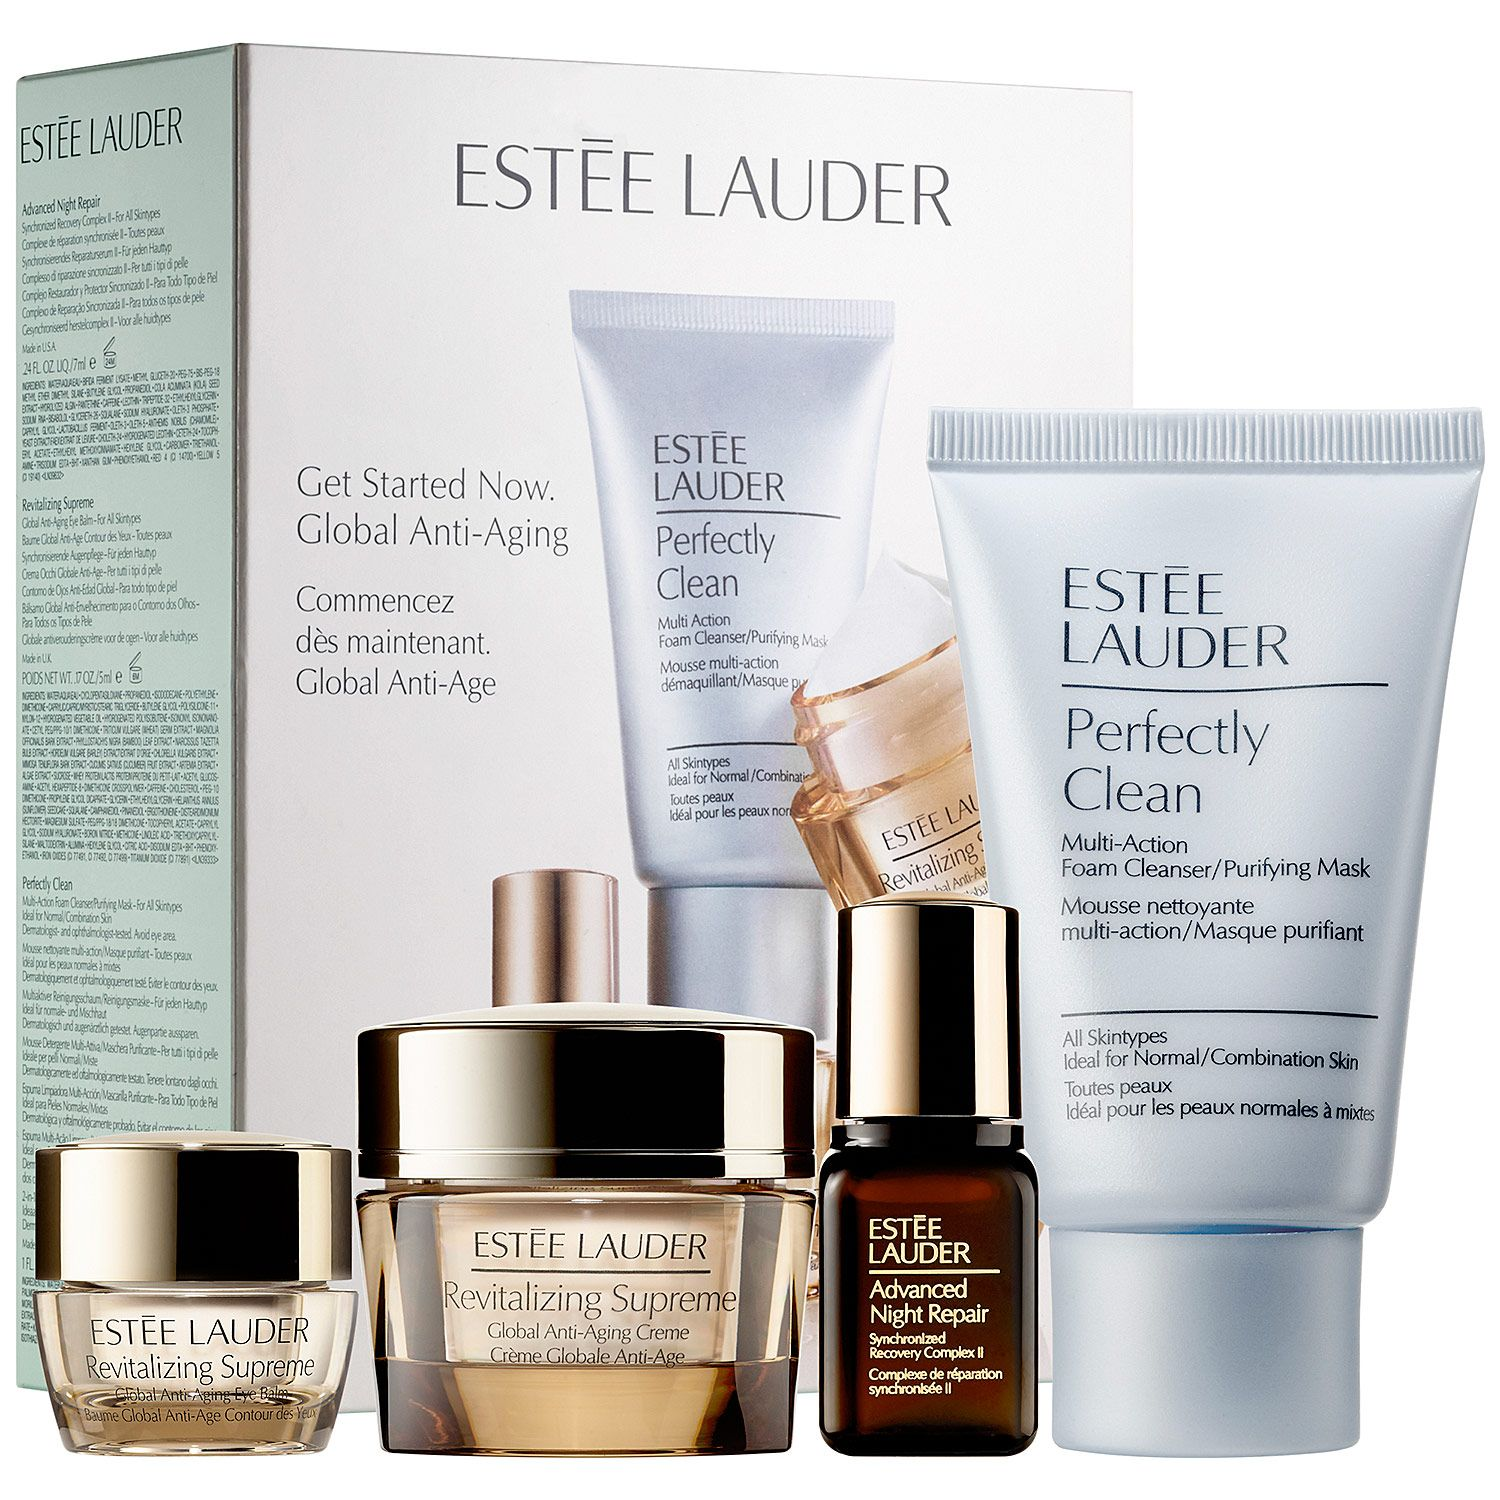 estee lauder revitalizing supreme starter kit